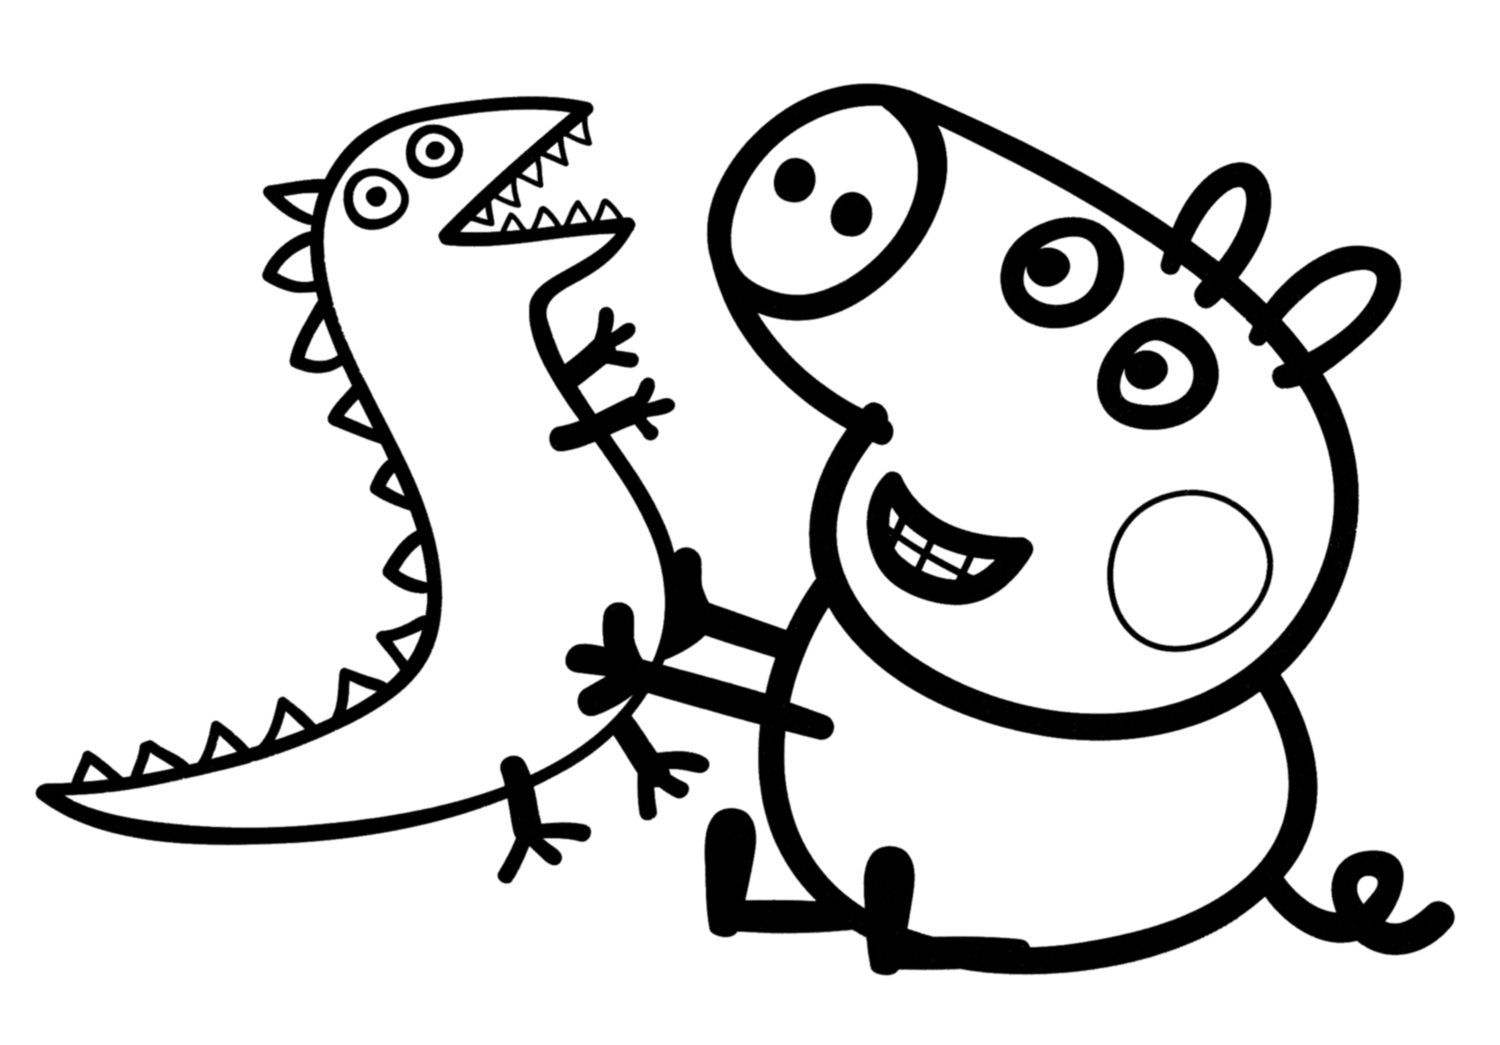 Peppa Pig George Colouring Pages Peppa Pig Coloring Pages Dinosaur Coloring Pages Peppa Pig Colouring